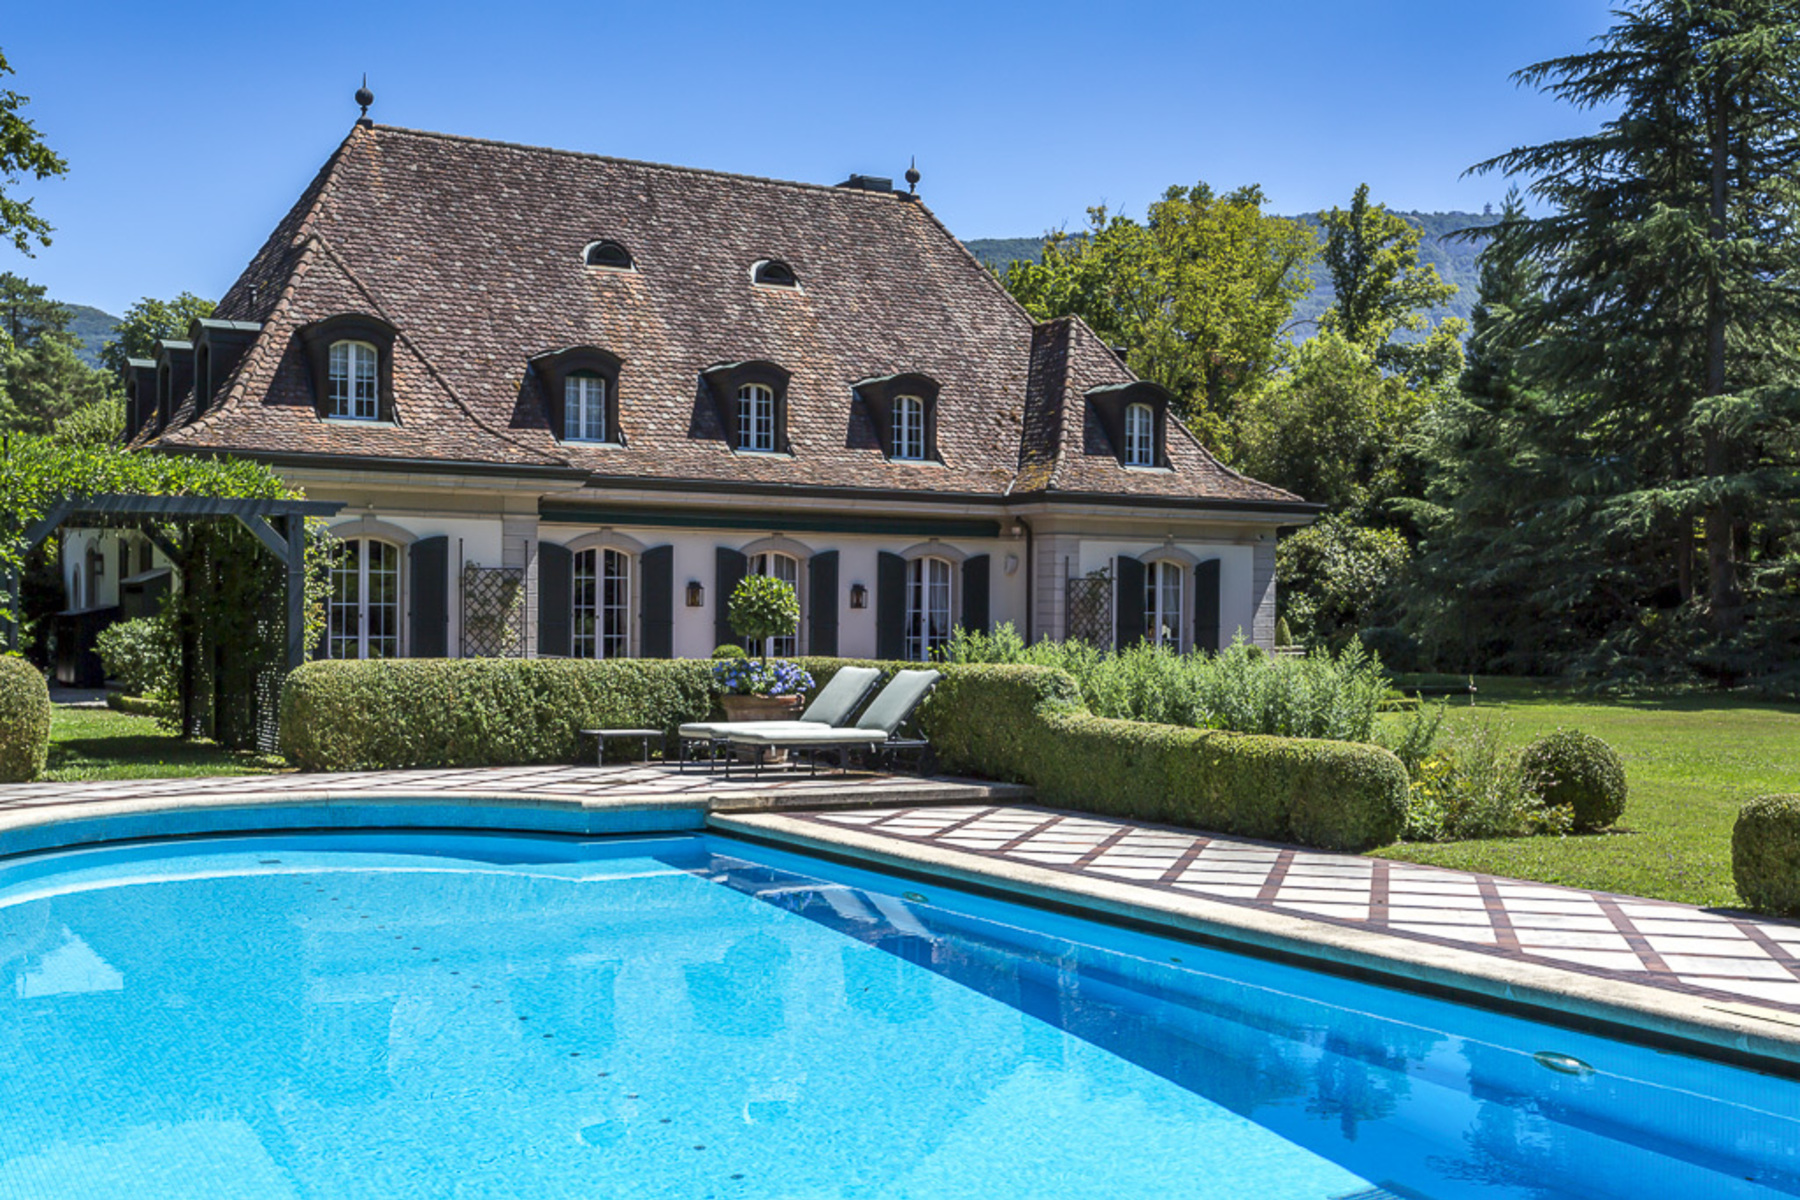 Single Family Home for Sale at Splendid mansion Conches Conches, Geneva, 1231 Switzerland